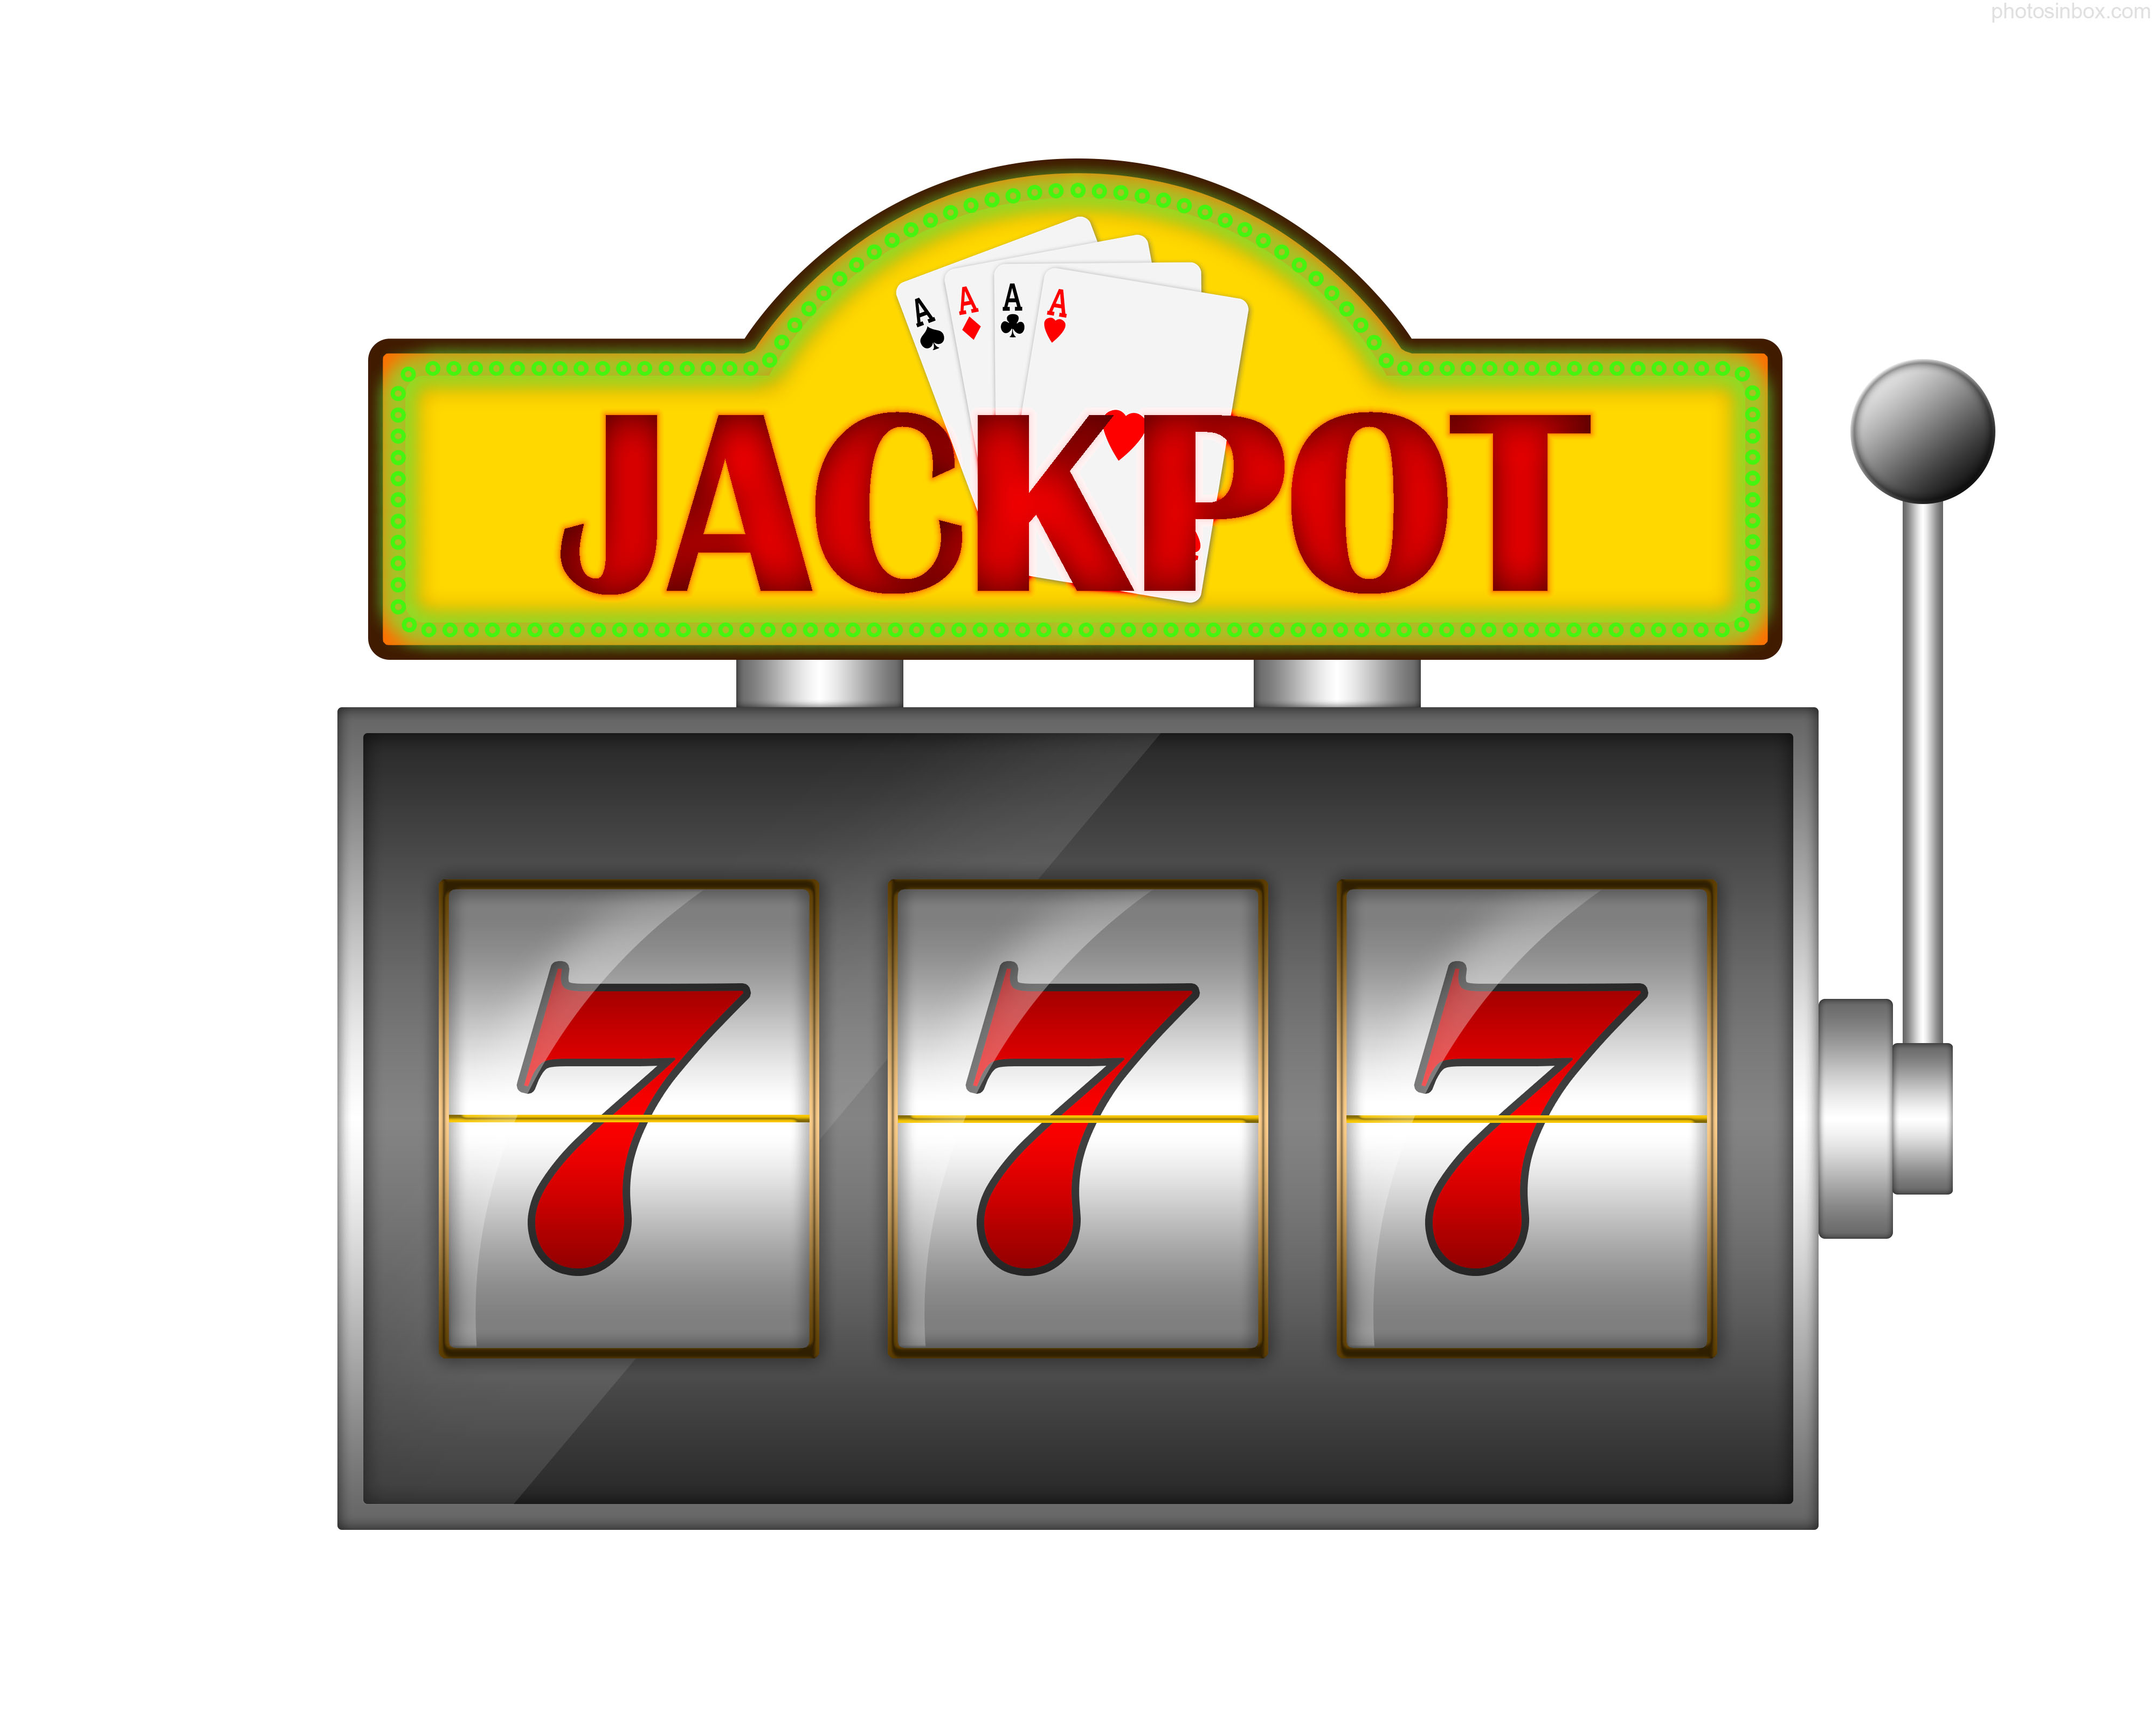 777 jackpot slot machine clipart clipart images gallery for.